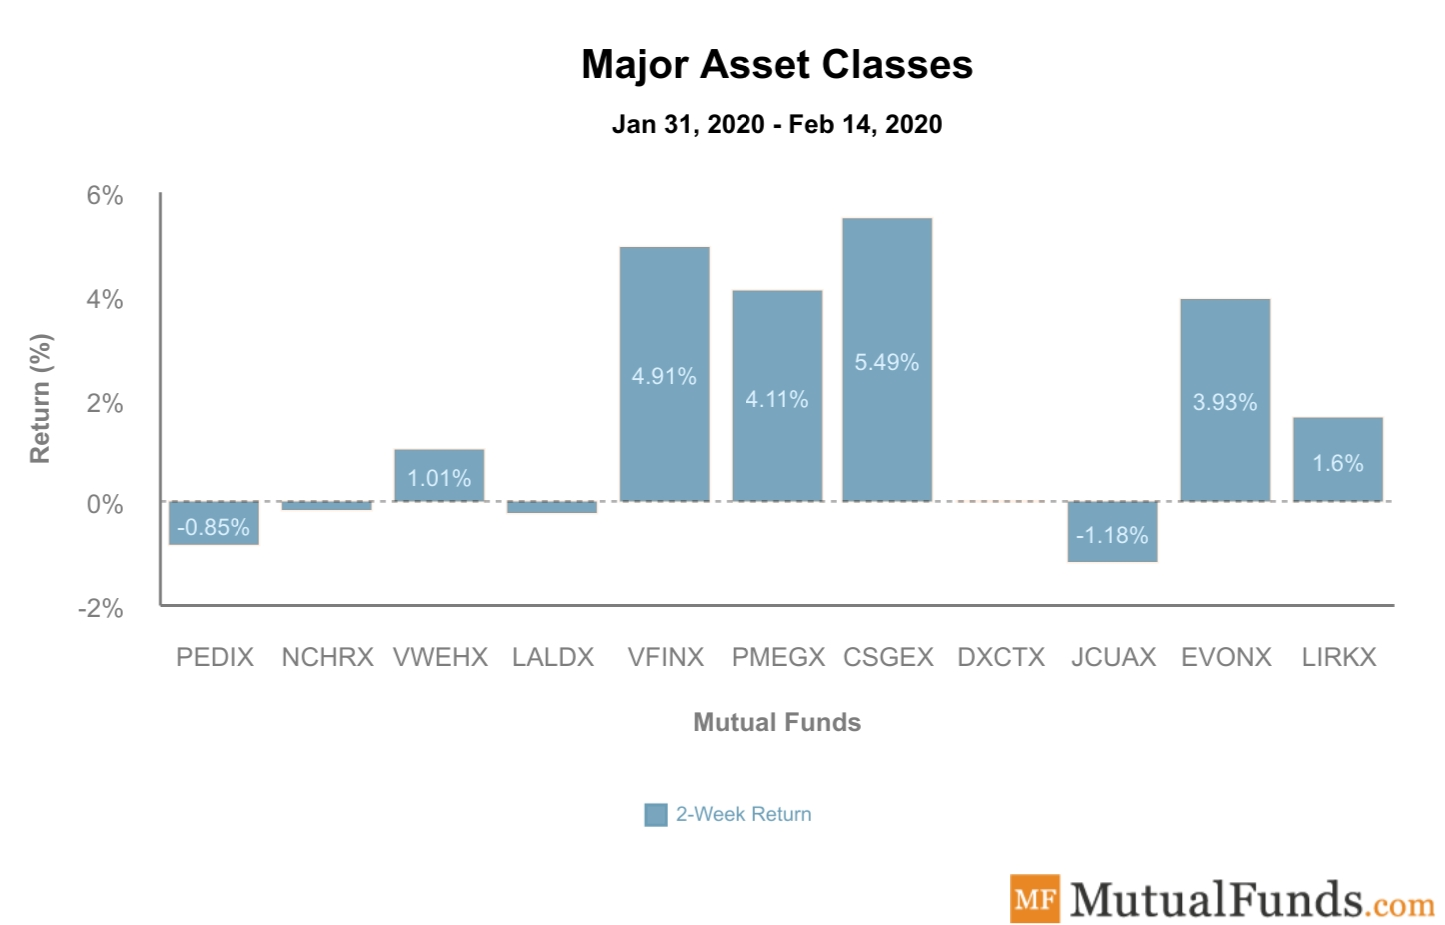 Major Asset Classes Performance Feb 18, 2020